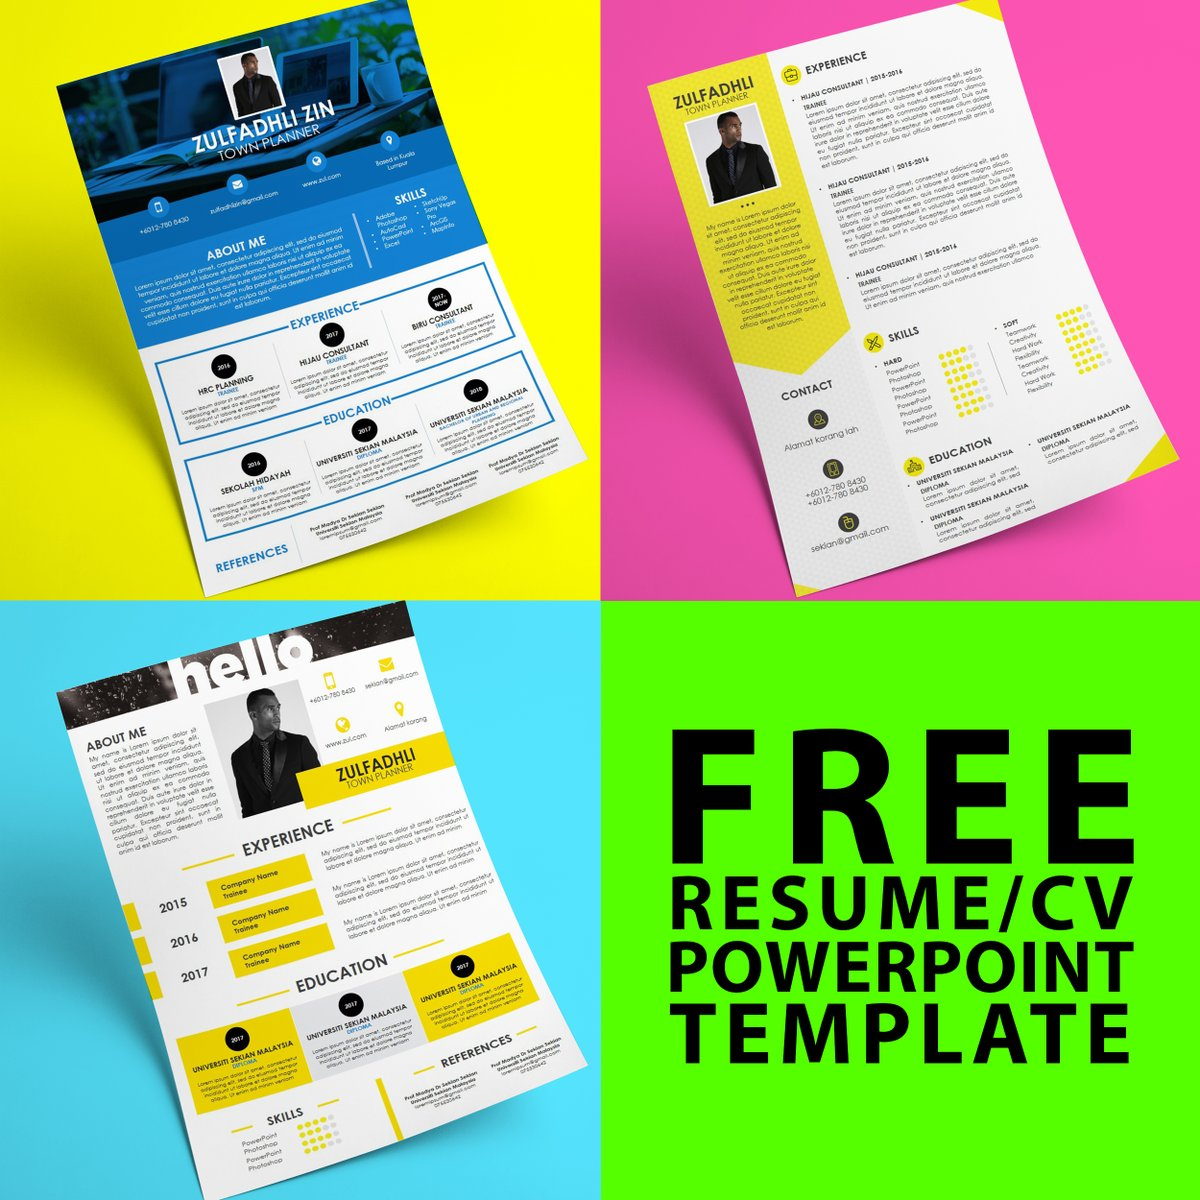 FREE Resume/CV Powerpoint Template